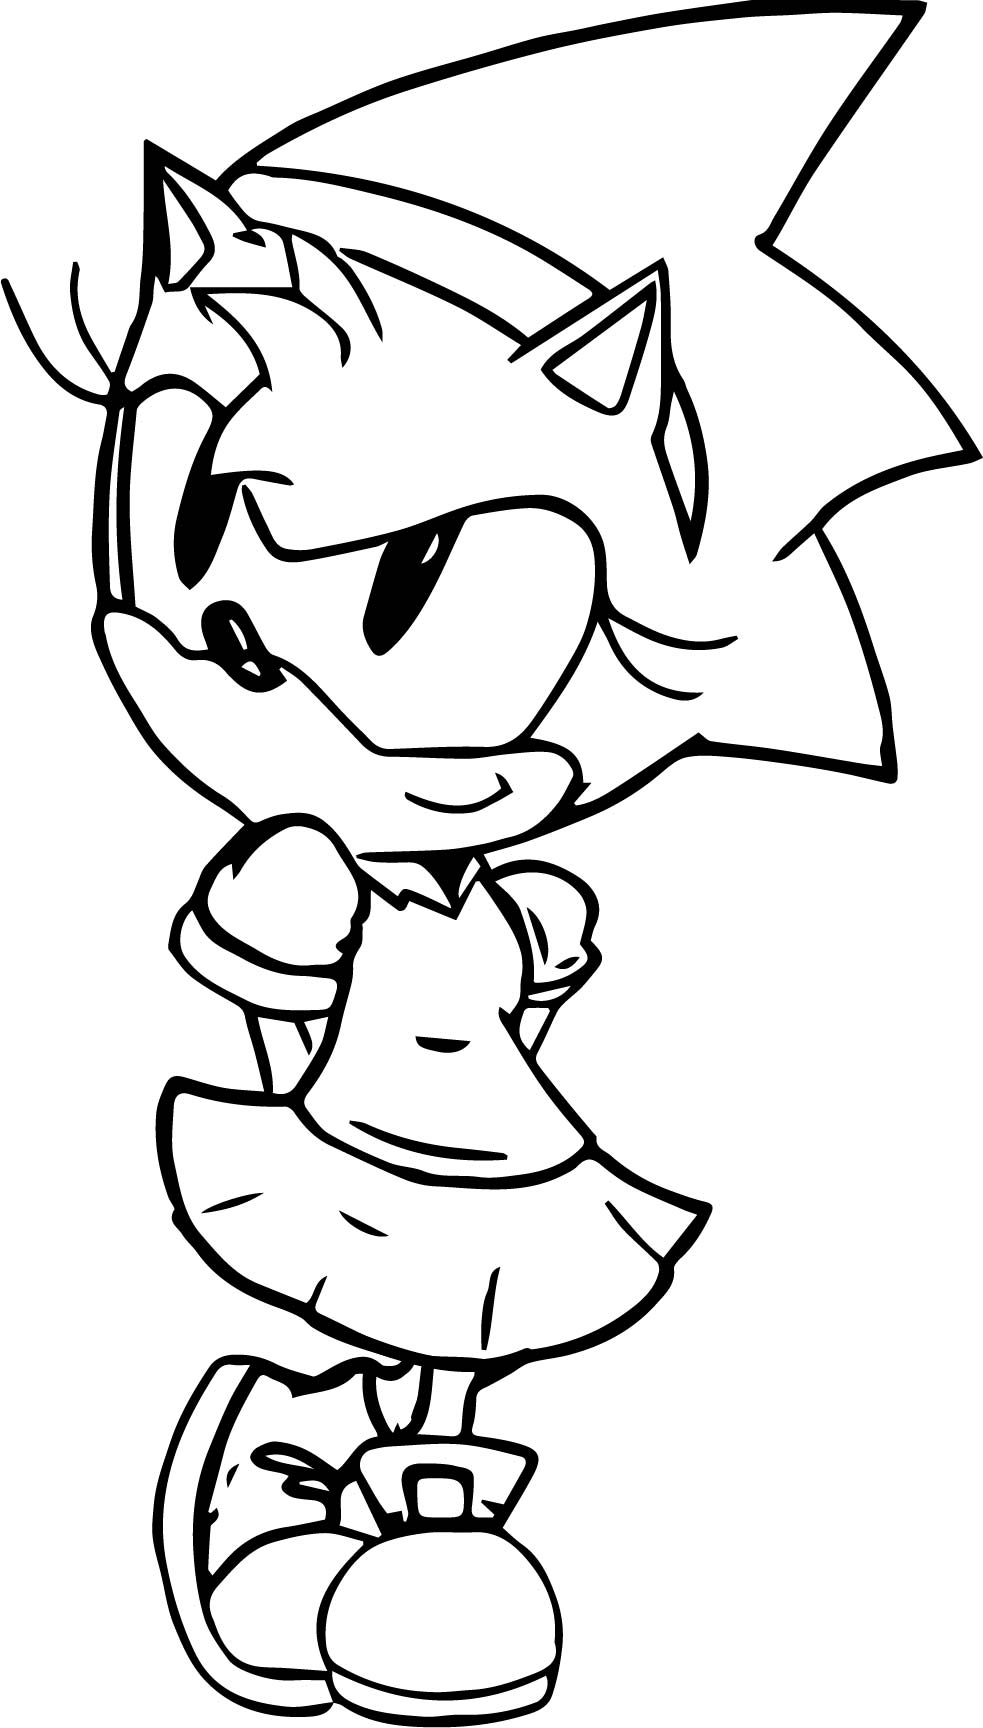 amy rose the hedgehog coloring pages virtren com